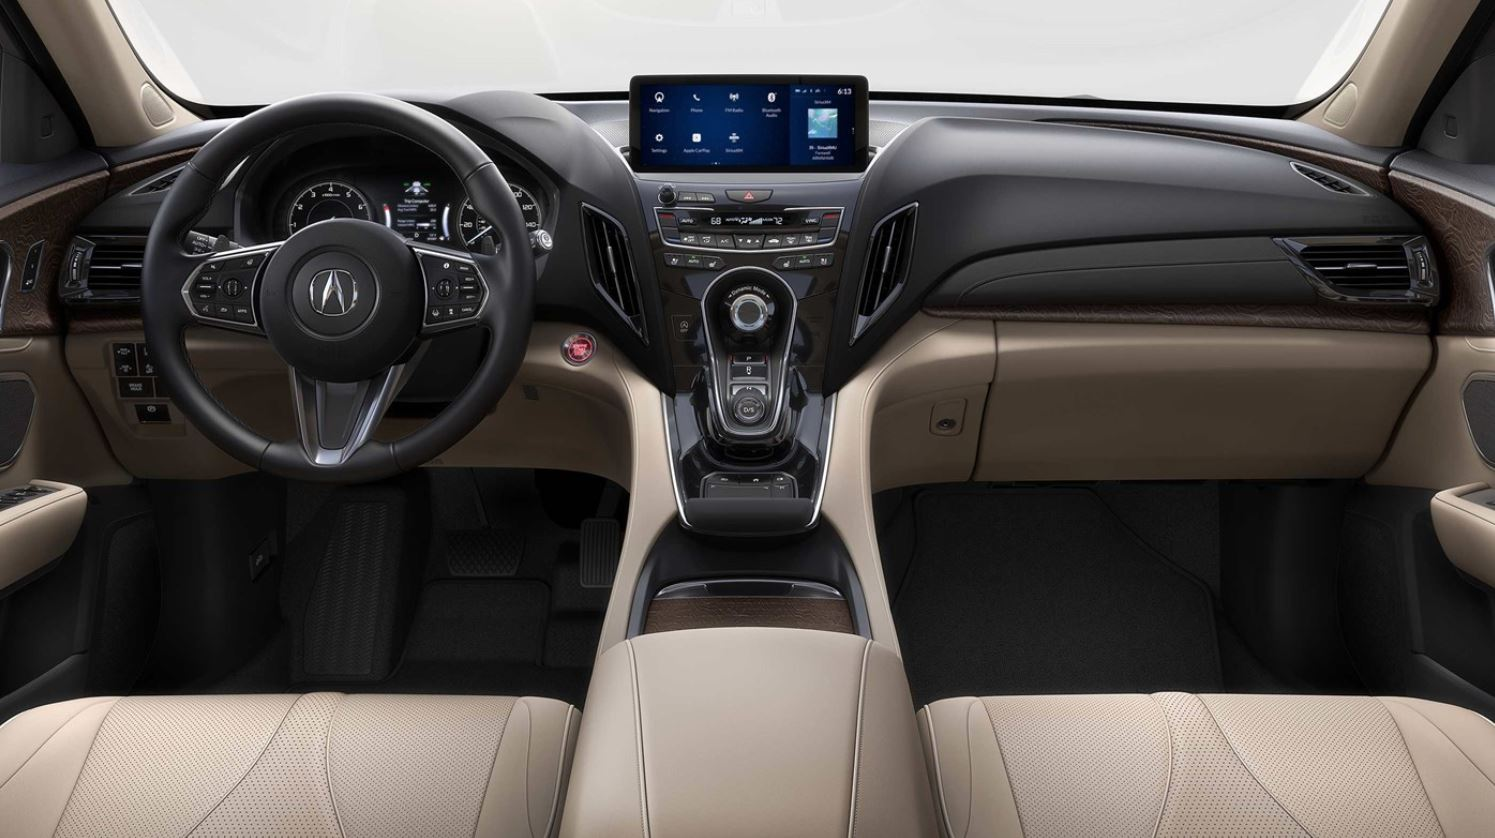 View Of The Front Interior Of The 2019 Acura RDX Prototype